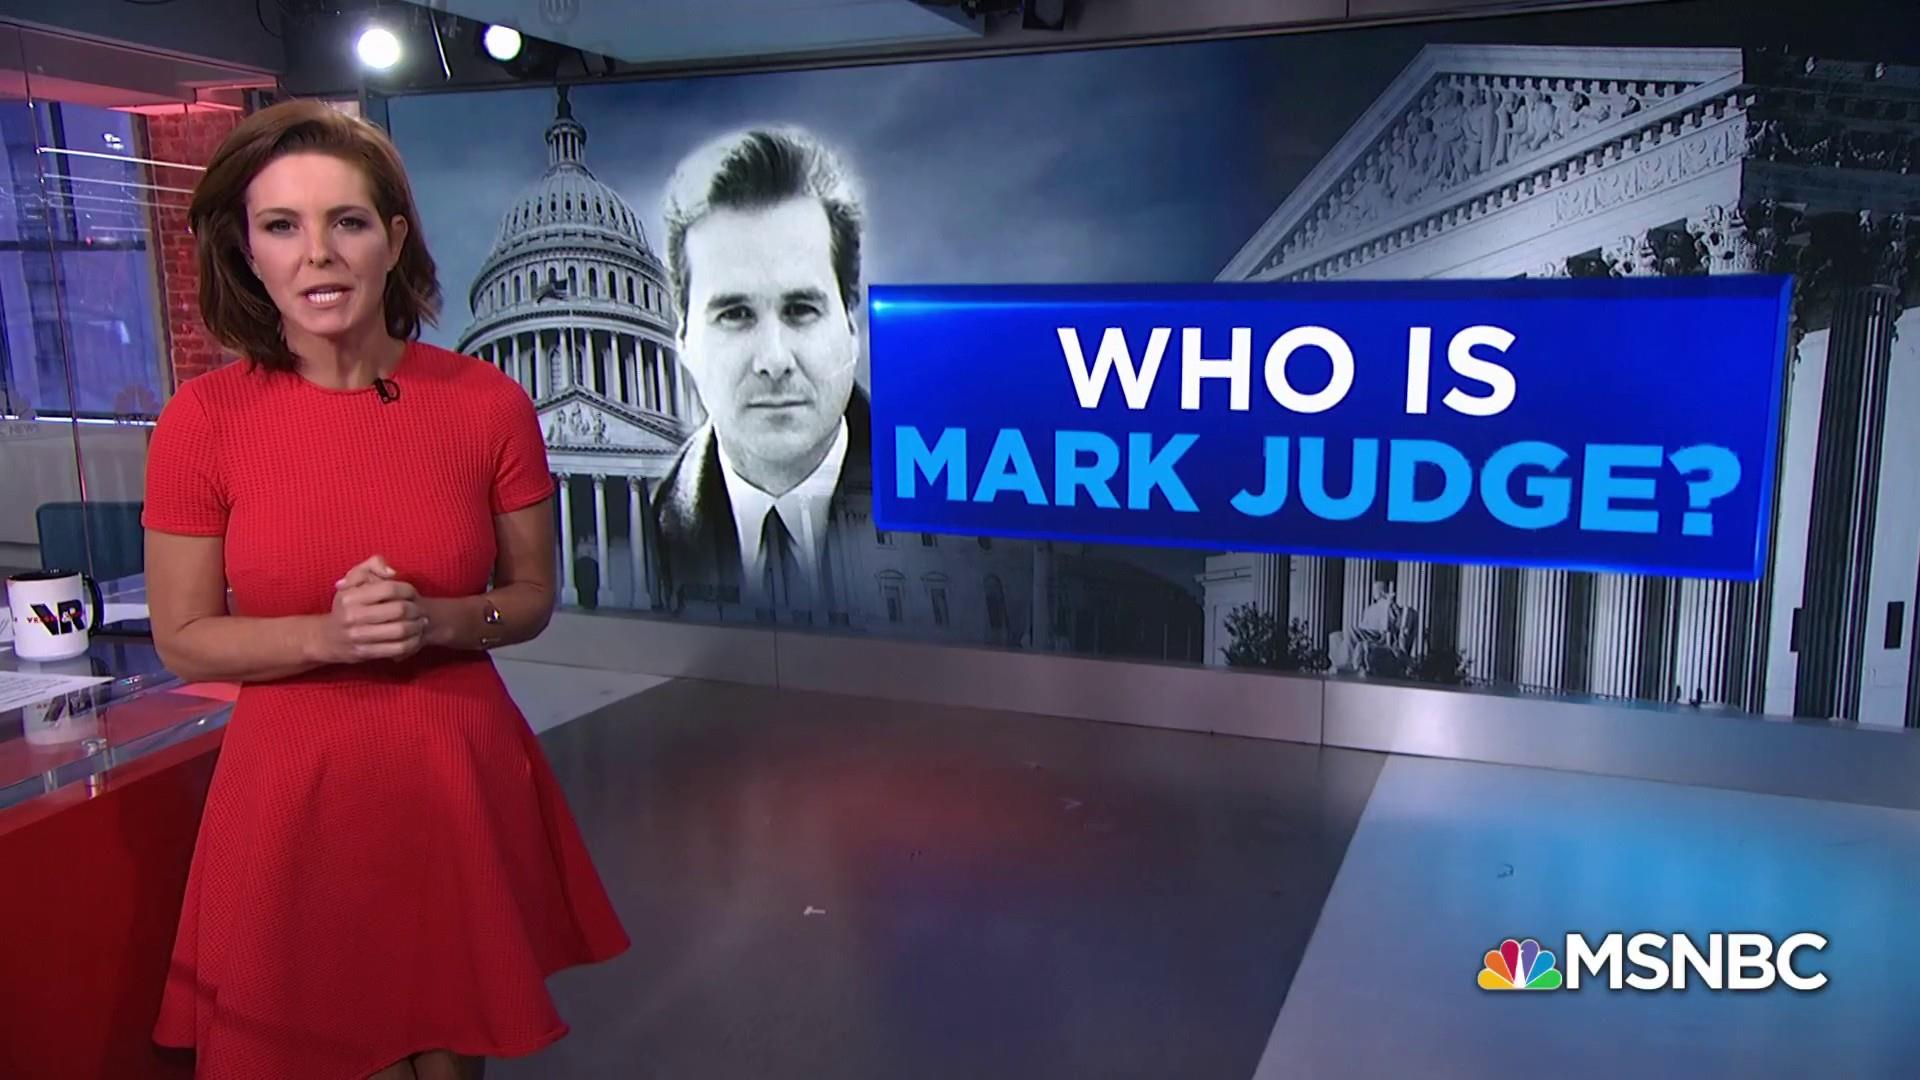 Who is Mark Judge?